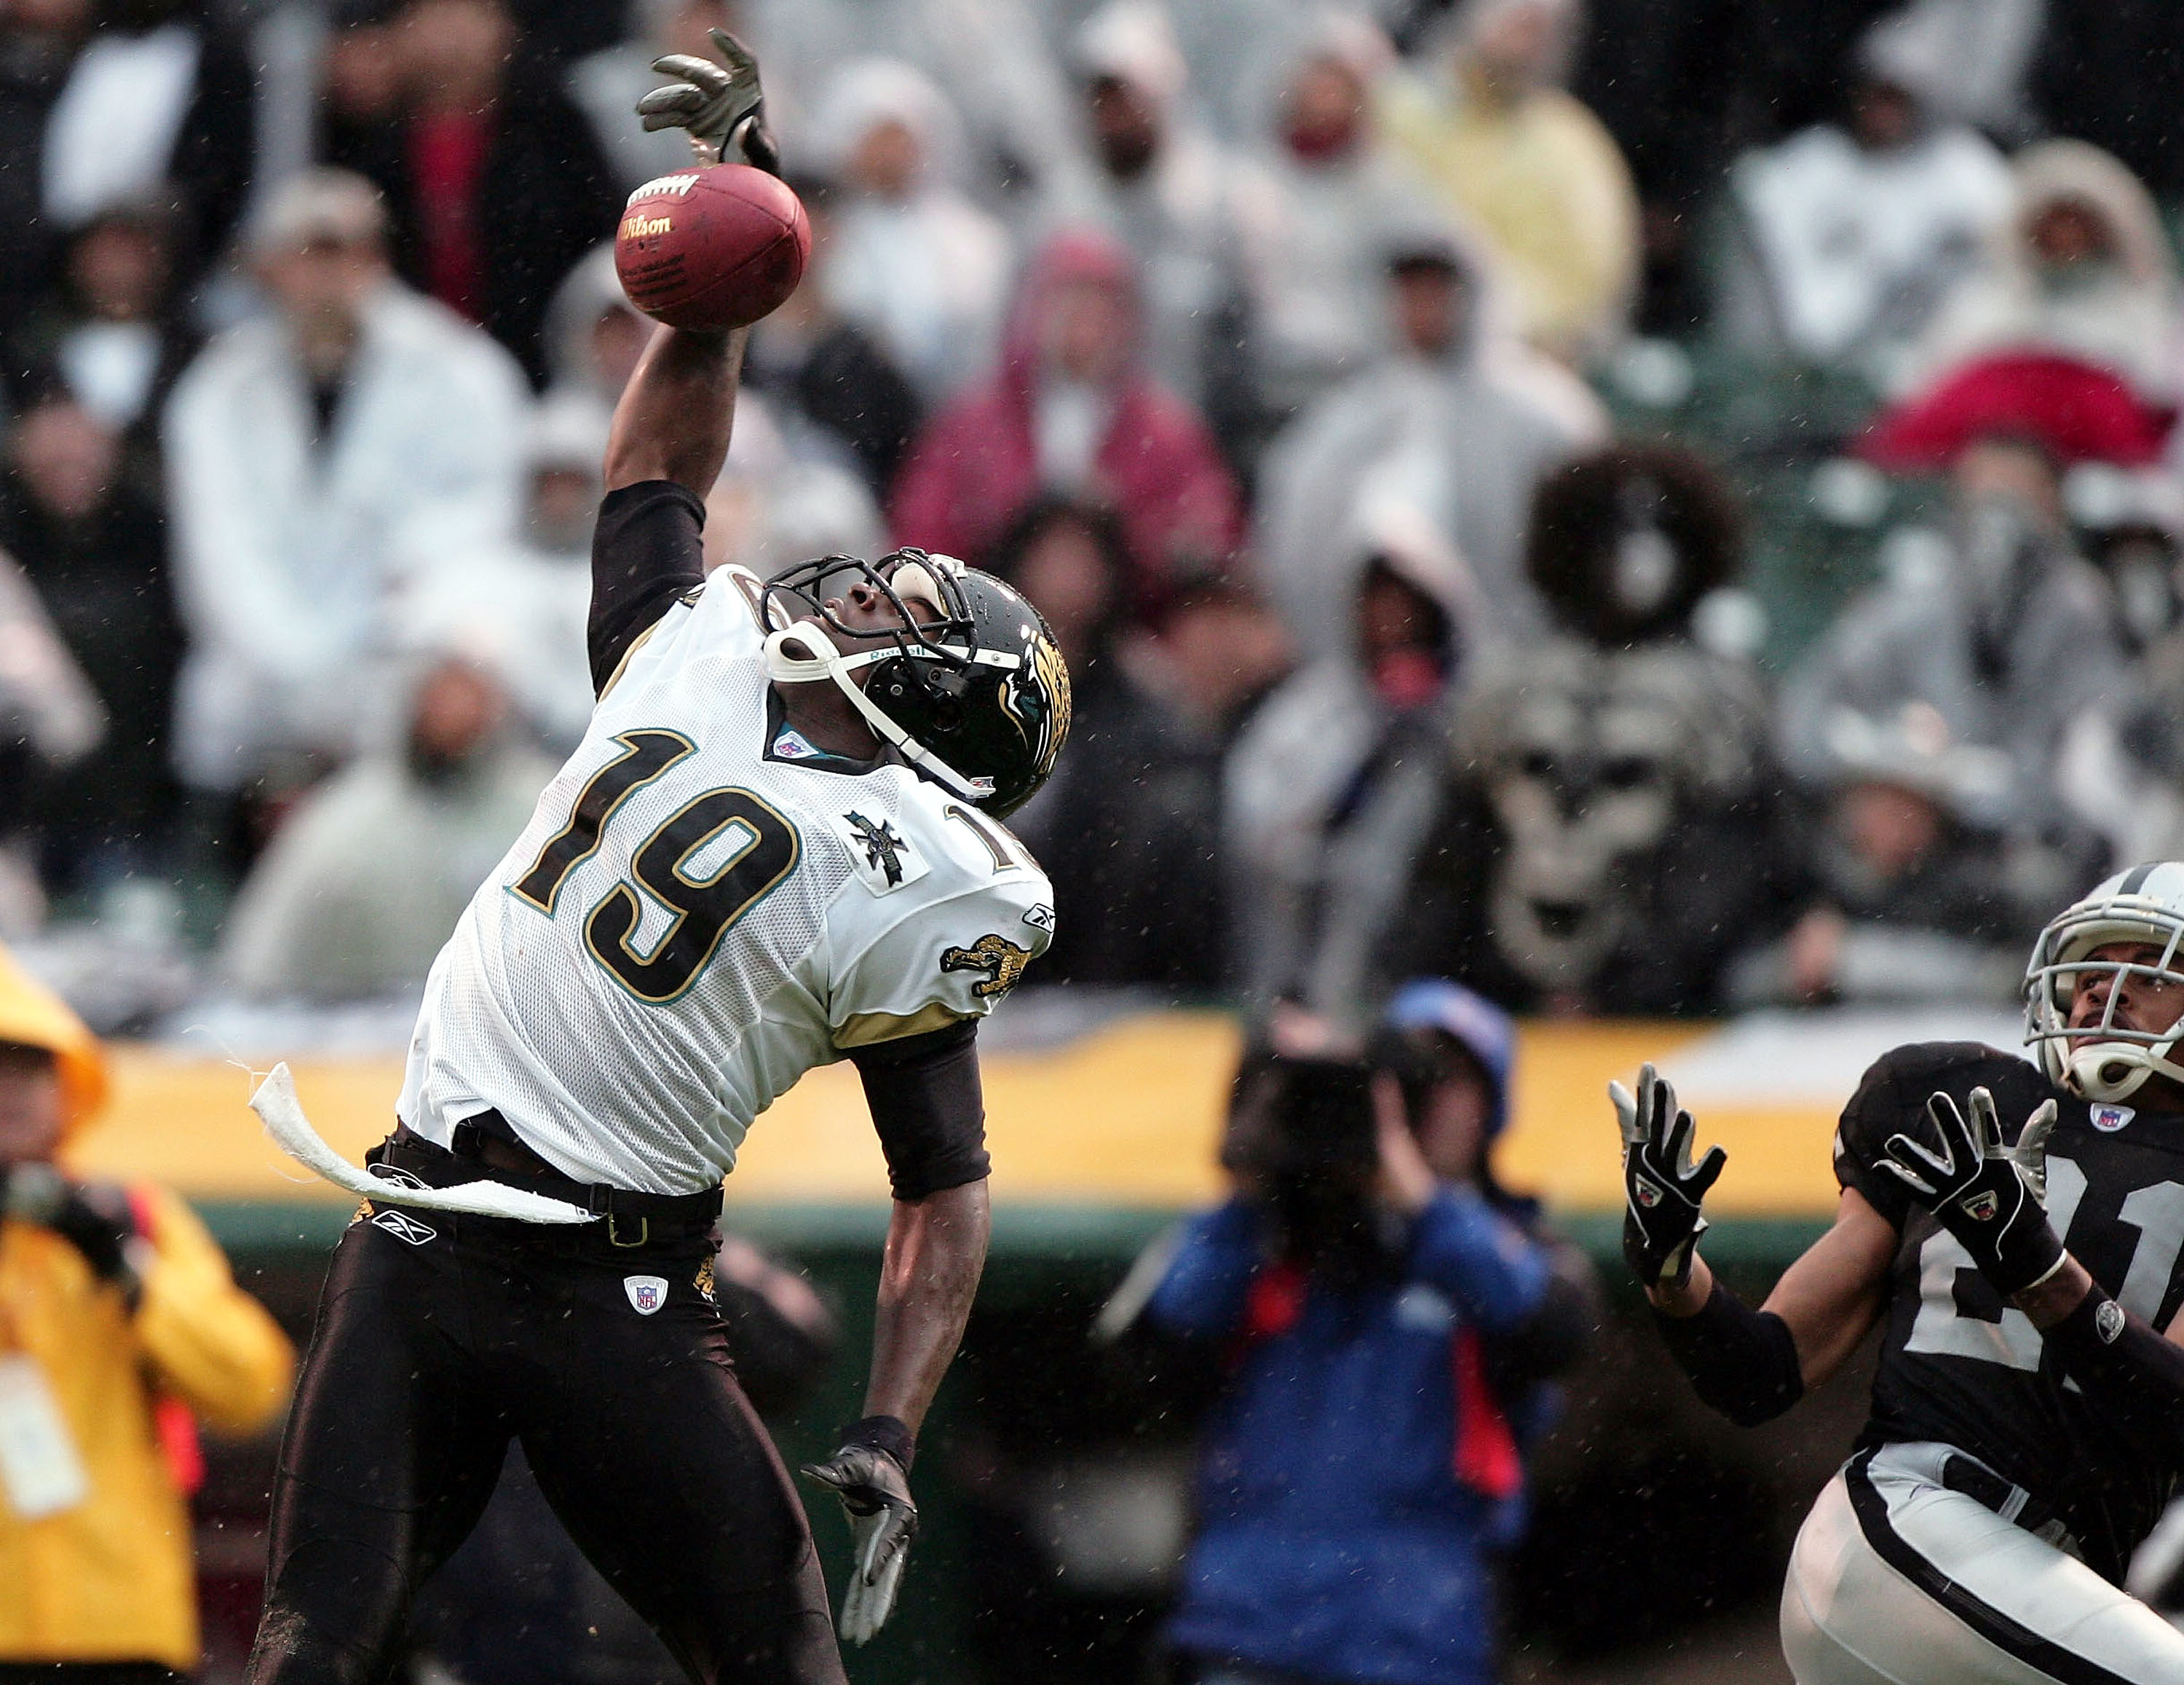 OAKLAND, CA - JANUARY 2:  Wide receiver Ernest Wilford #19 of the Jacksonville Jaguars makes a catch in the fourth quarter, setting up the only touchdown of the game, against Nnamdi Asomugha #21 of the Oakland Raiders at Network Associates Coliseum on Jan